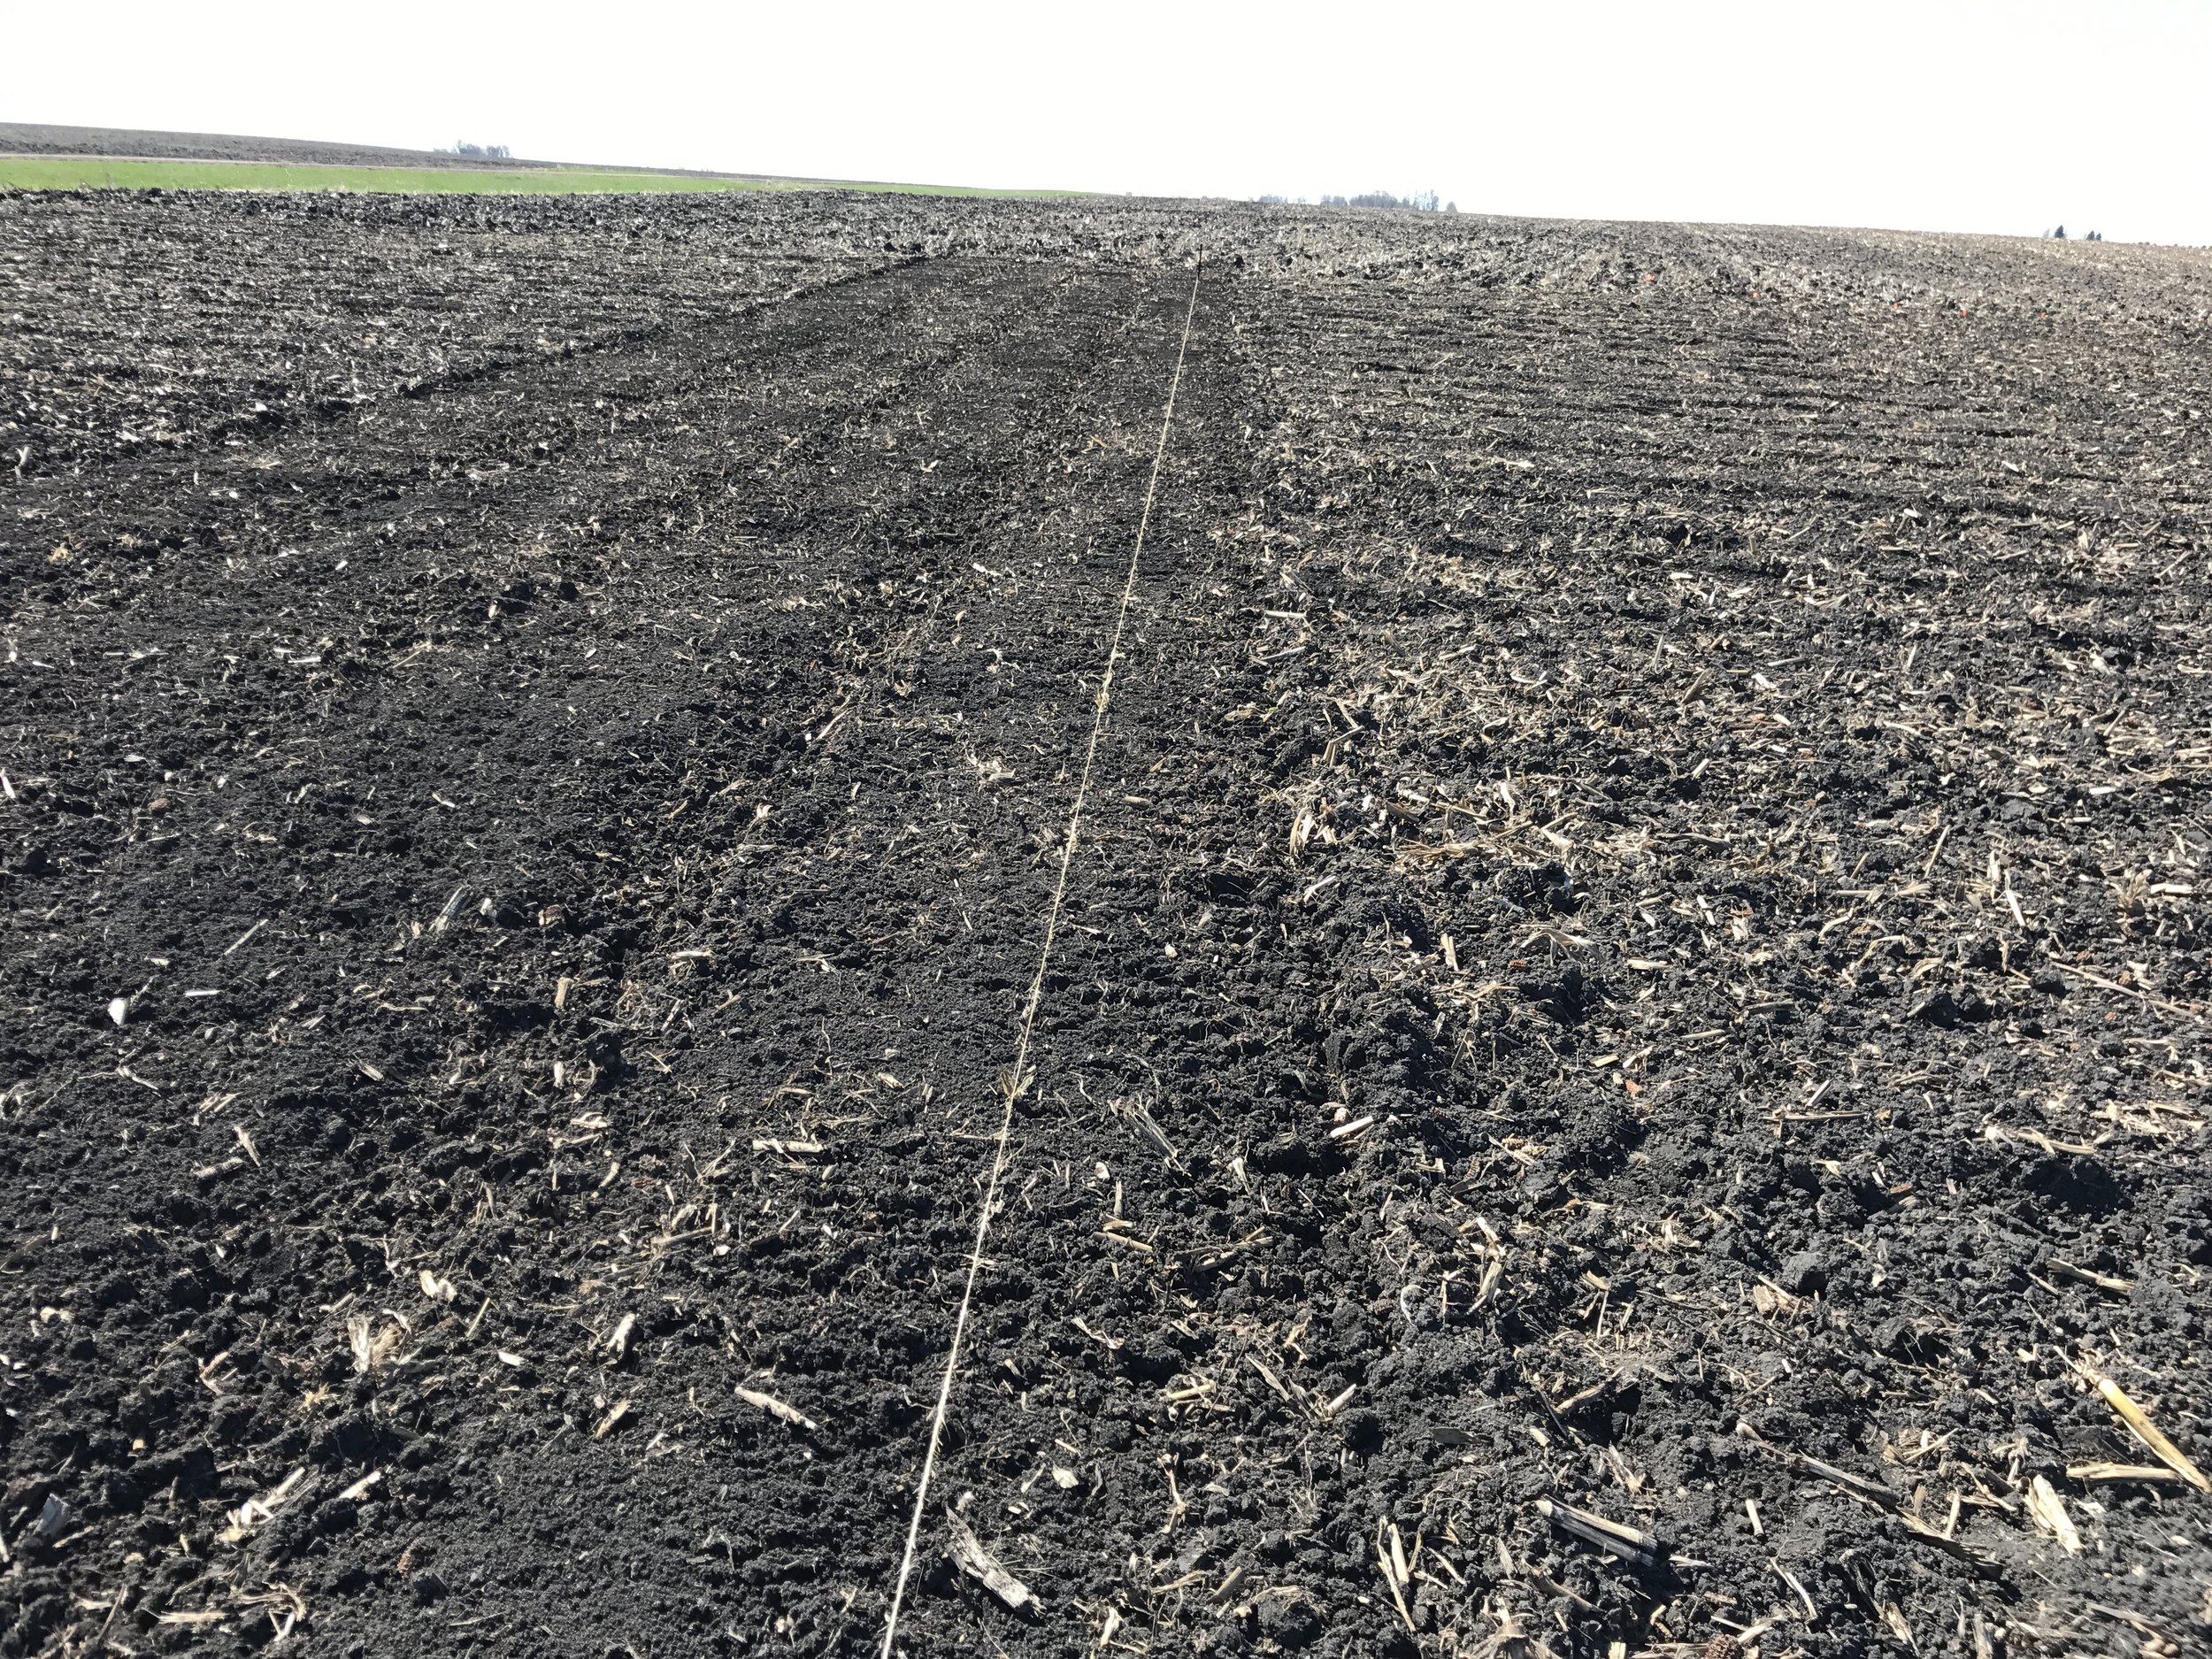 A nice straight row. The plants don't care if it's straight or now but certainly helps us humans keep organized.